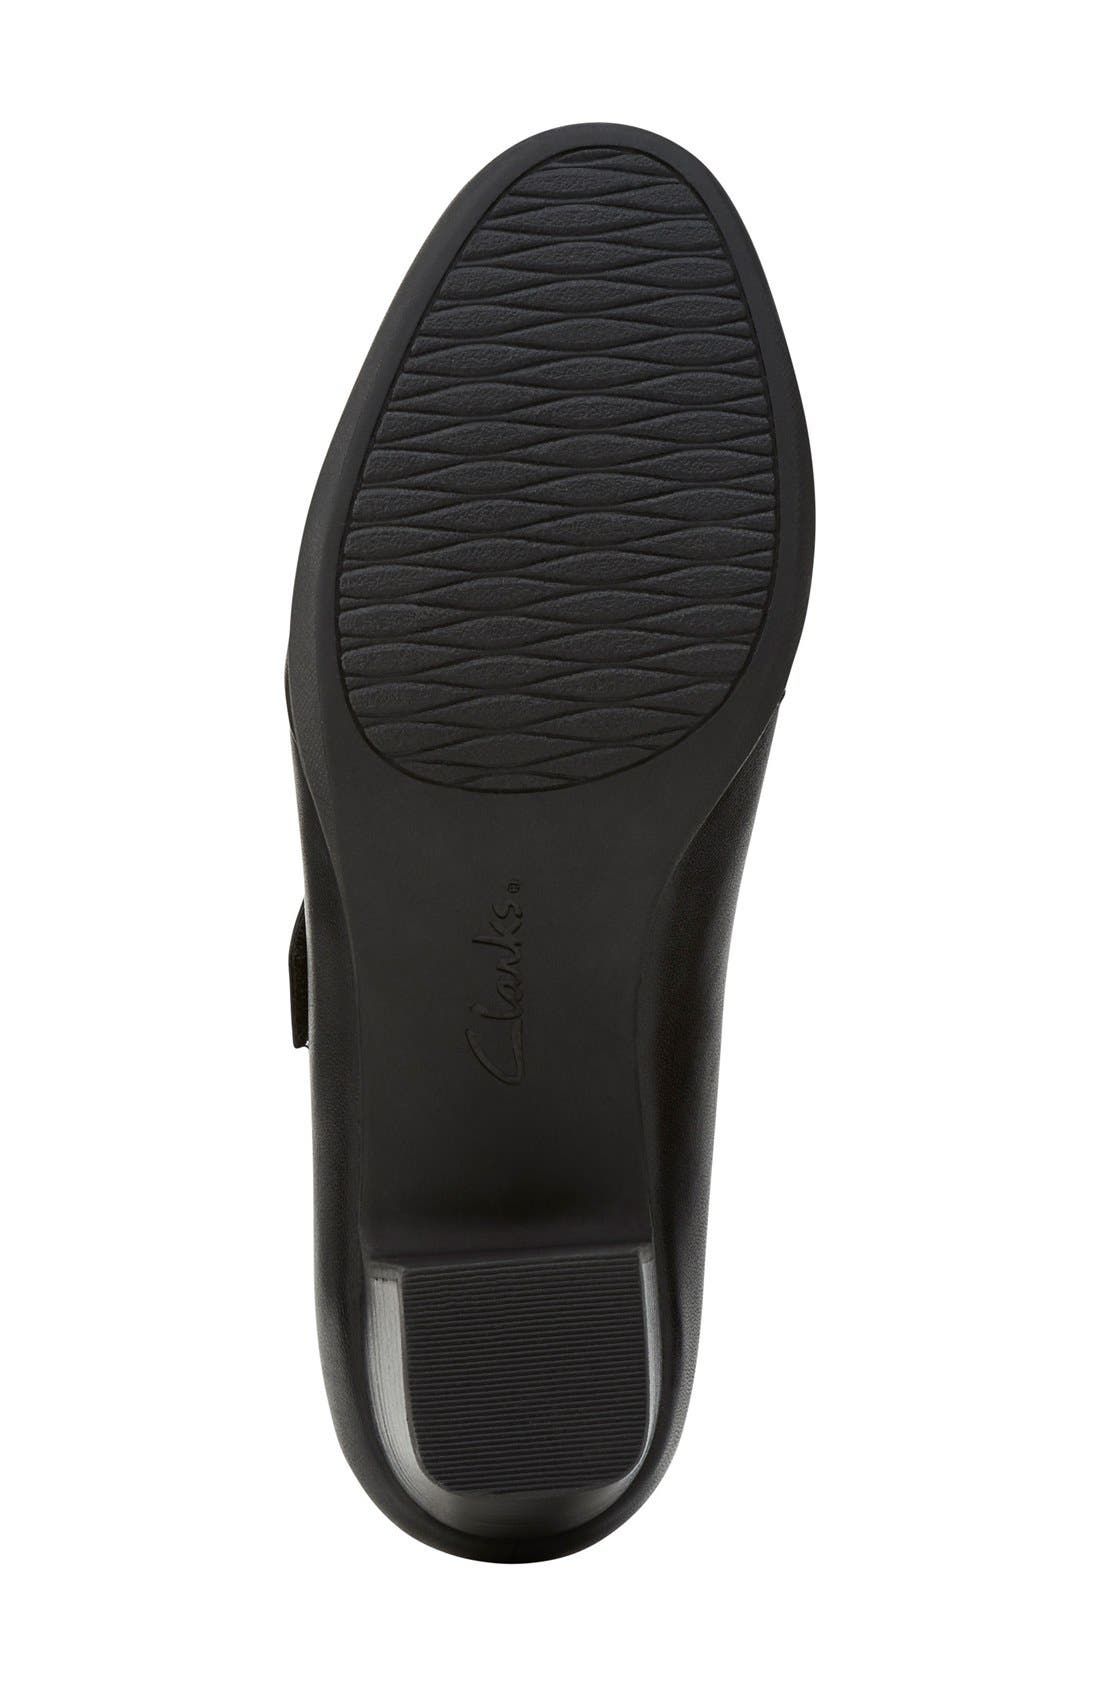 'Rosalyn Wren' Mary Jane Pump,                             Alternate thumbnail 4, color,                             Black Leather